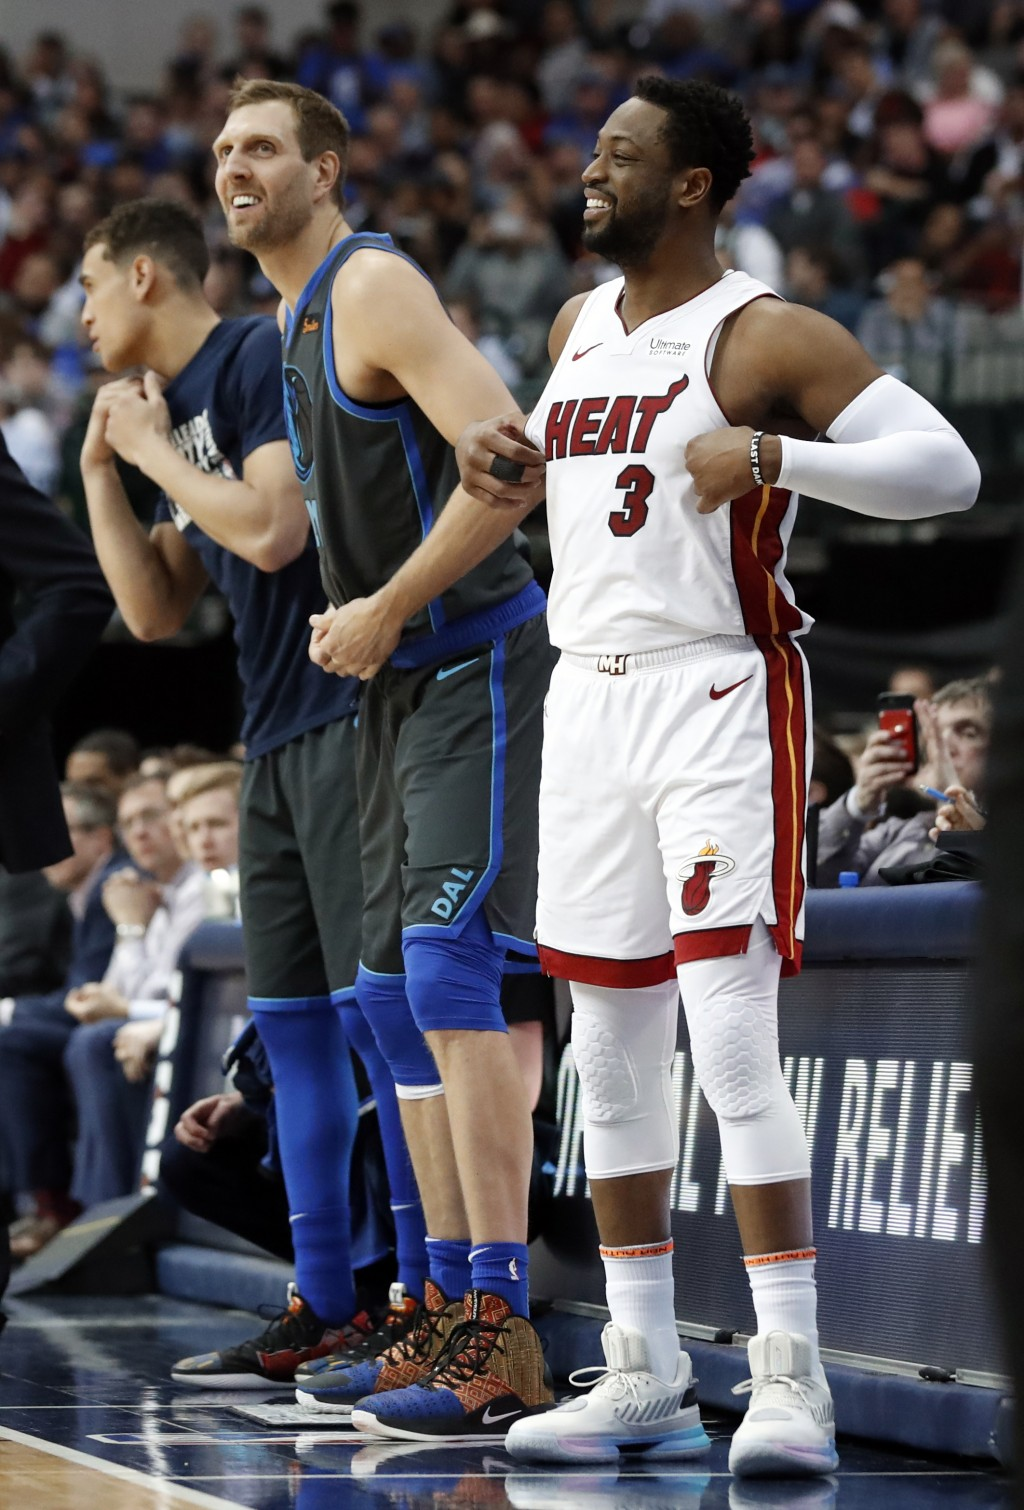 Dallas Mavericks forward Dirk Nowitzki, left, and Miami Heat guard Dwyane Wade, right, prepare to enter during the first half of an NBA basketball gam